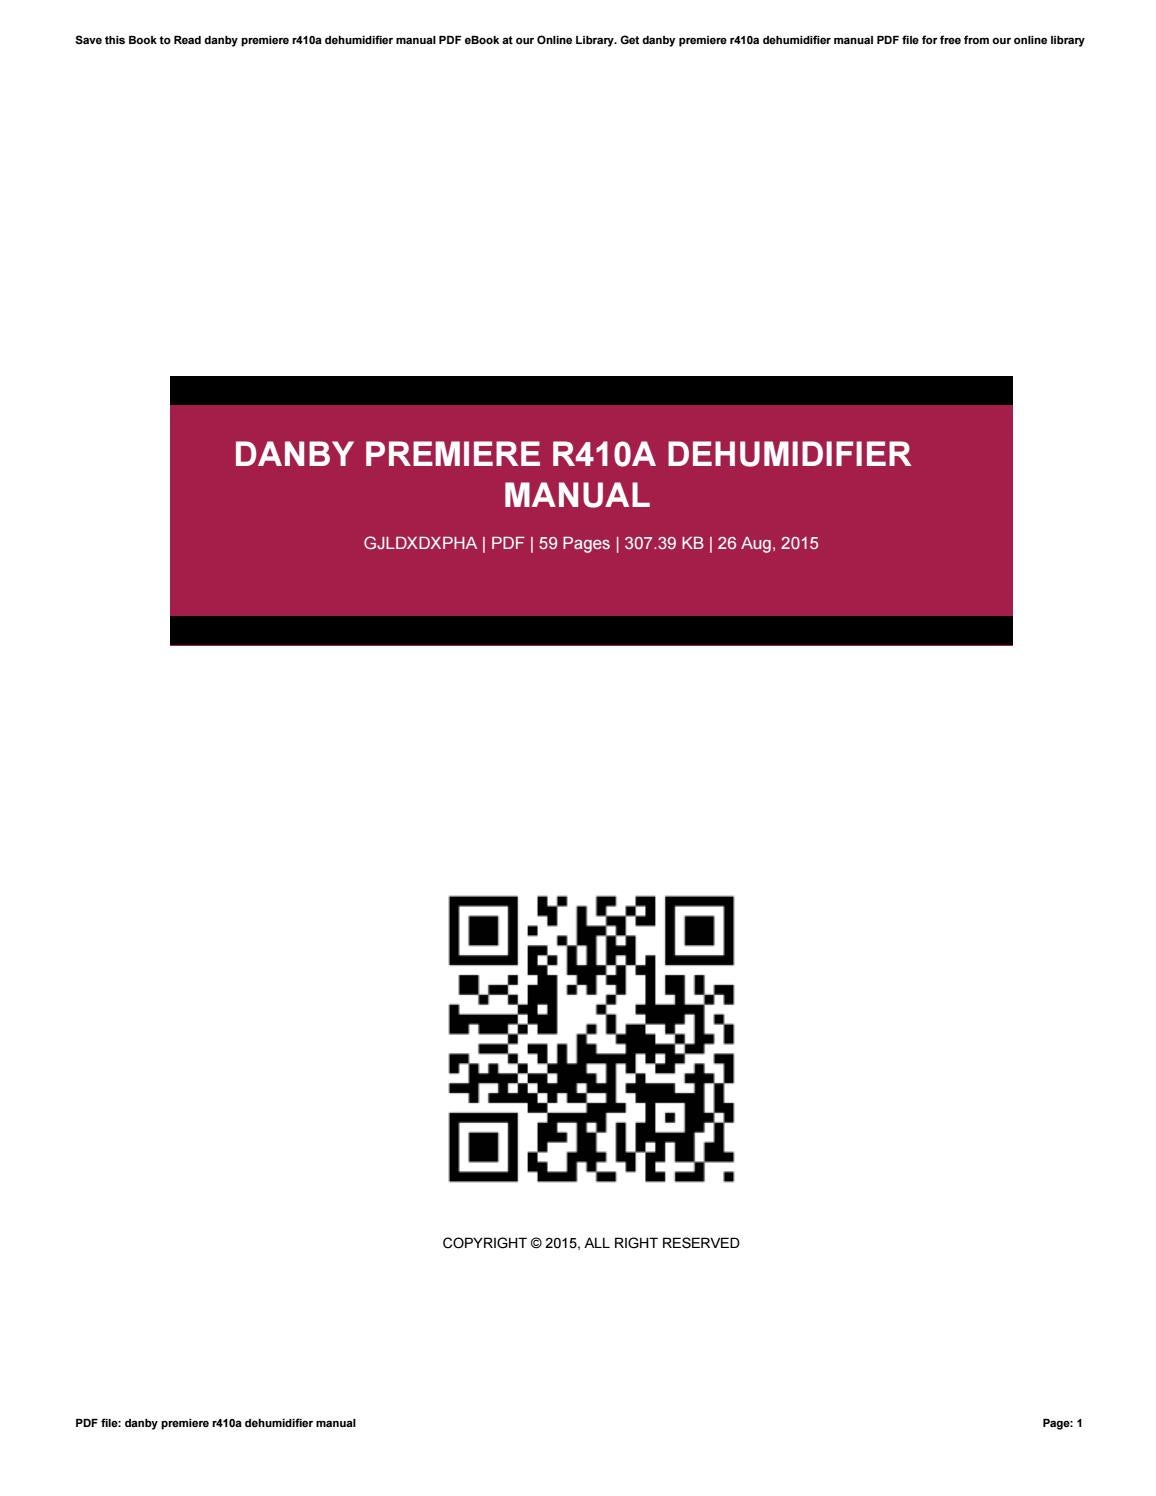 Danby premiere r410a dehumidifier manual by john issuu baditri Images